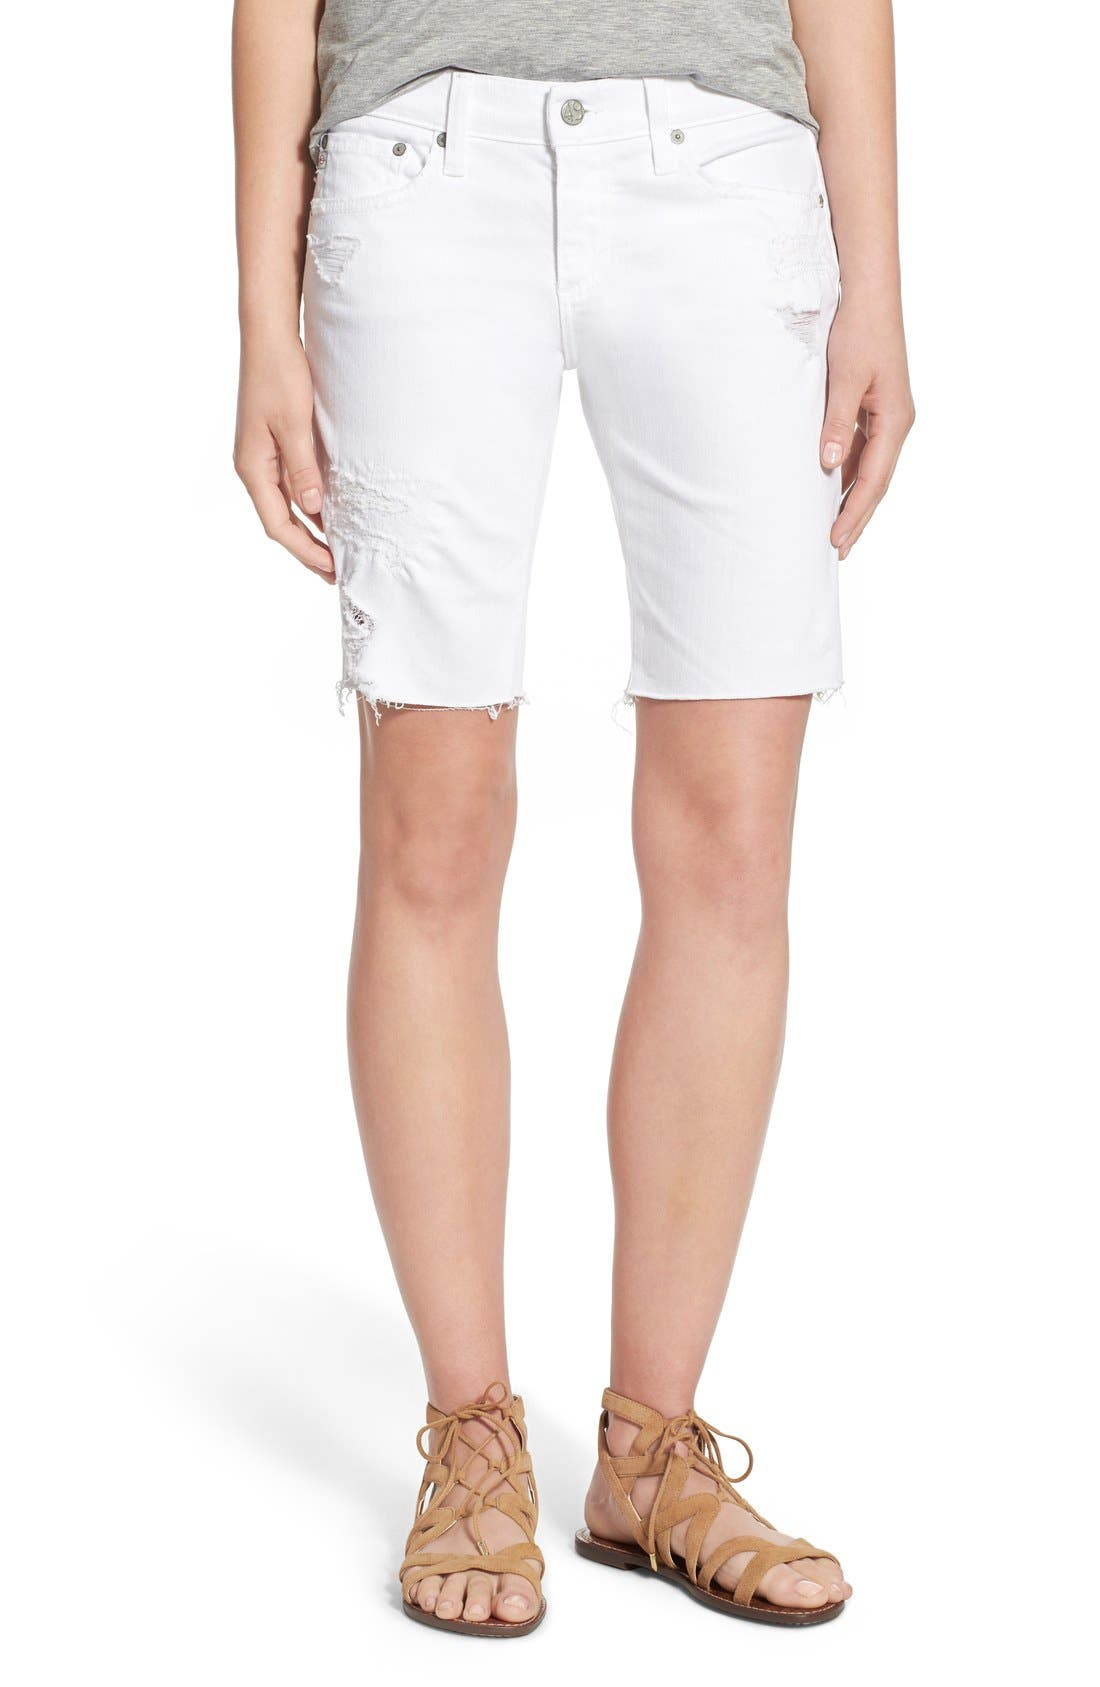 AG 'Nikki' Cutoff Denim Bermuda Shorts (1 Year White Mended)